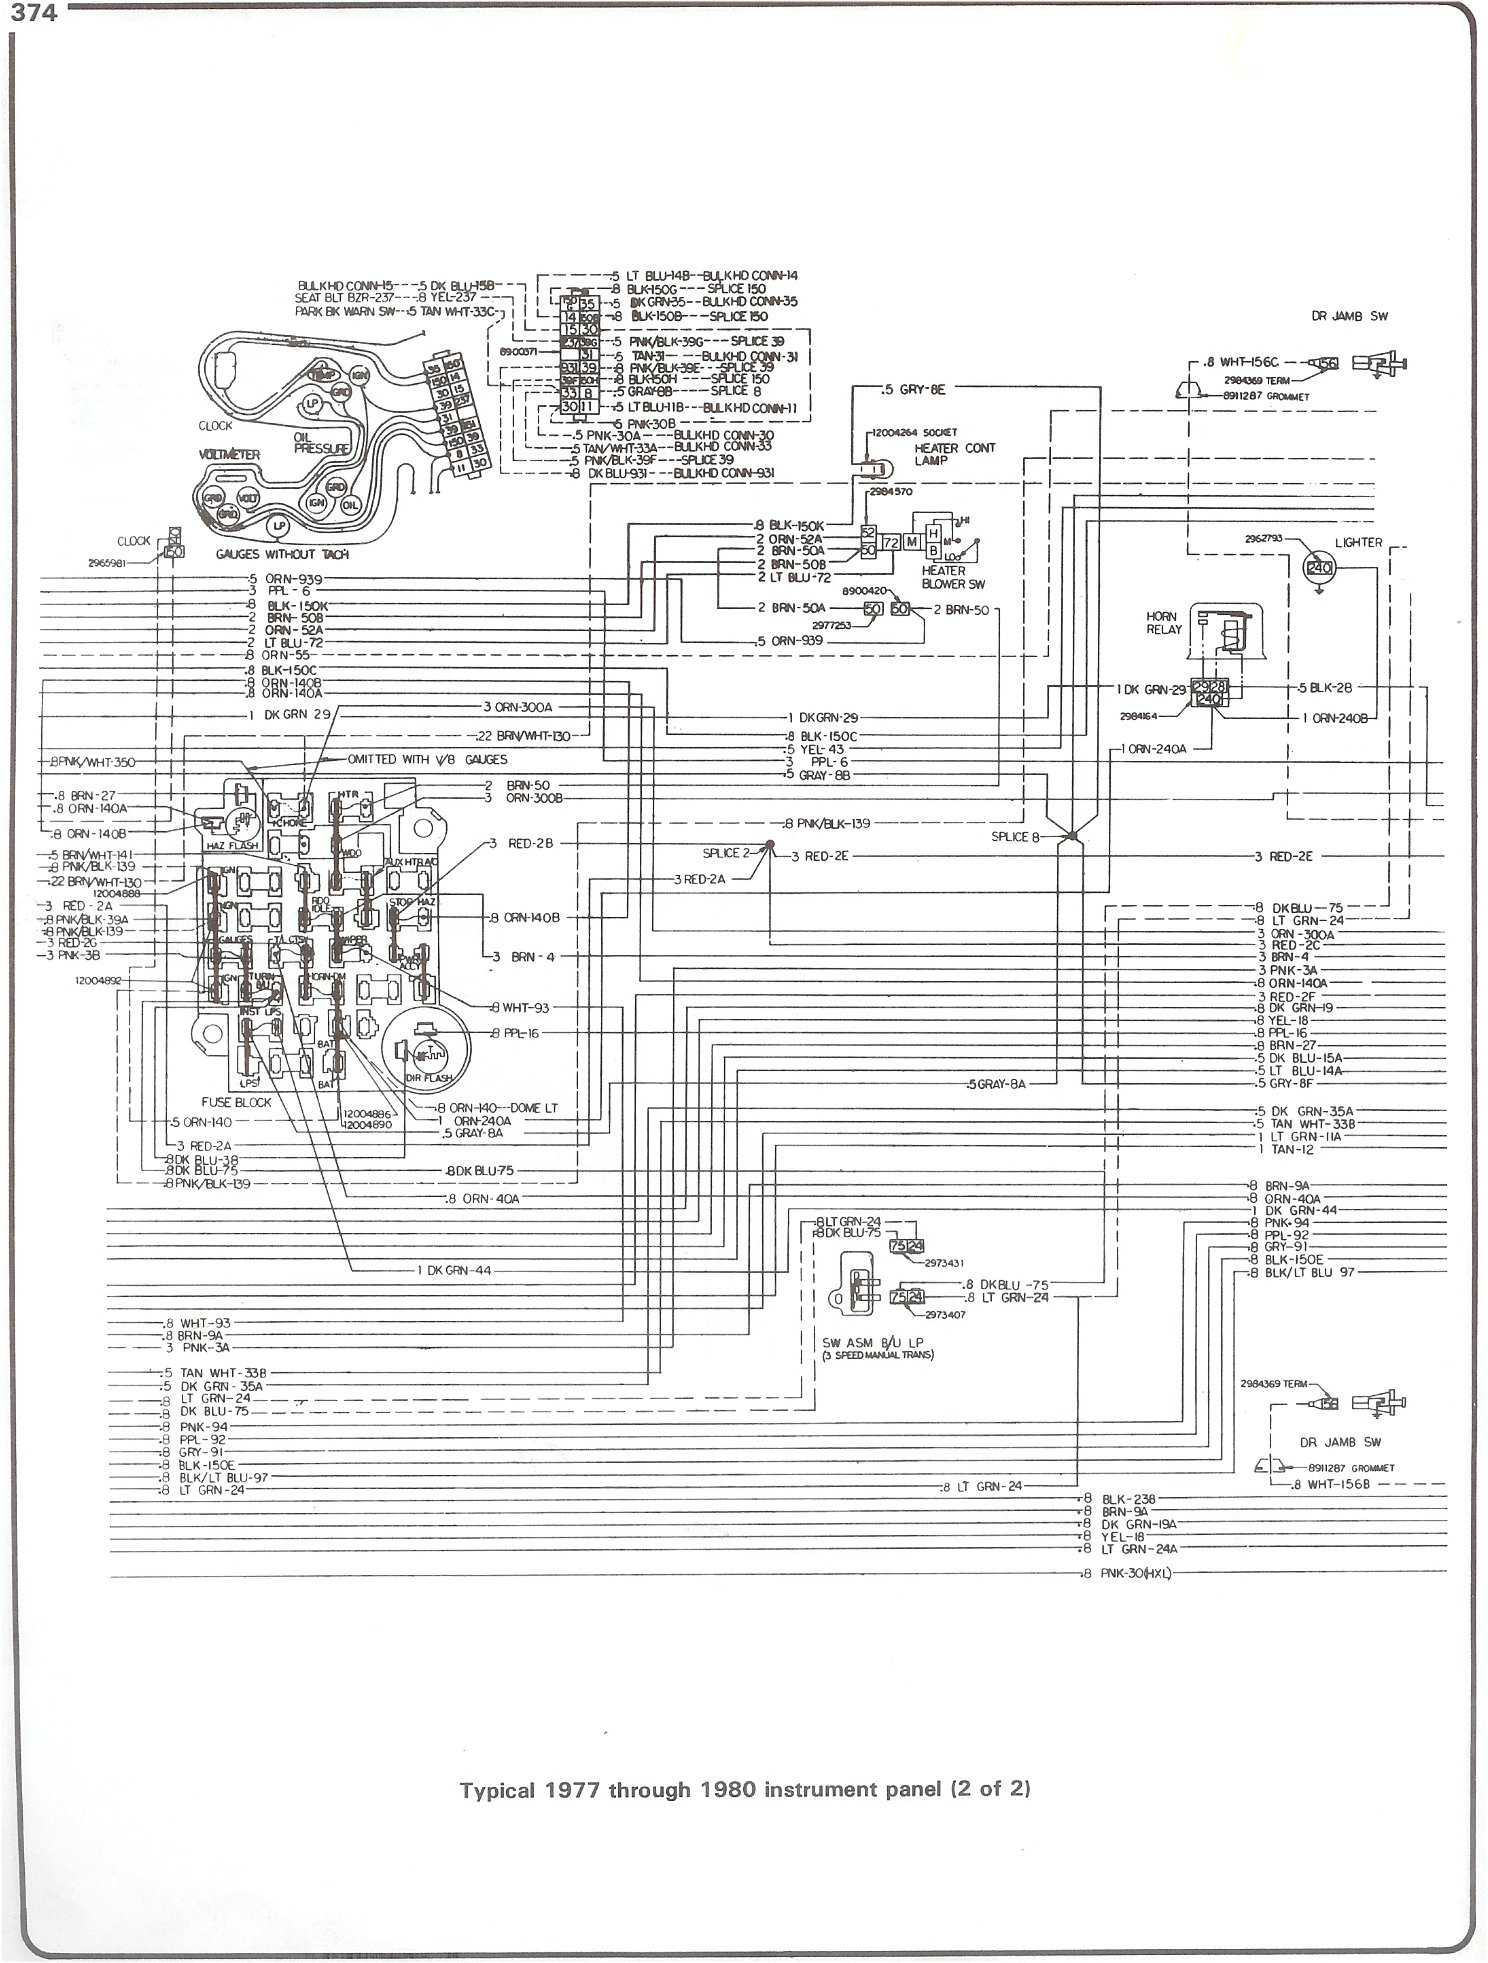 1999 Chevy Malibu Wiring Diagram Moreover 2003 Chevy Silverado Parts